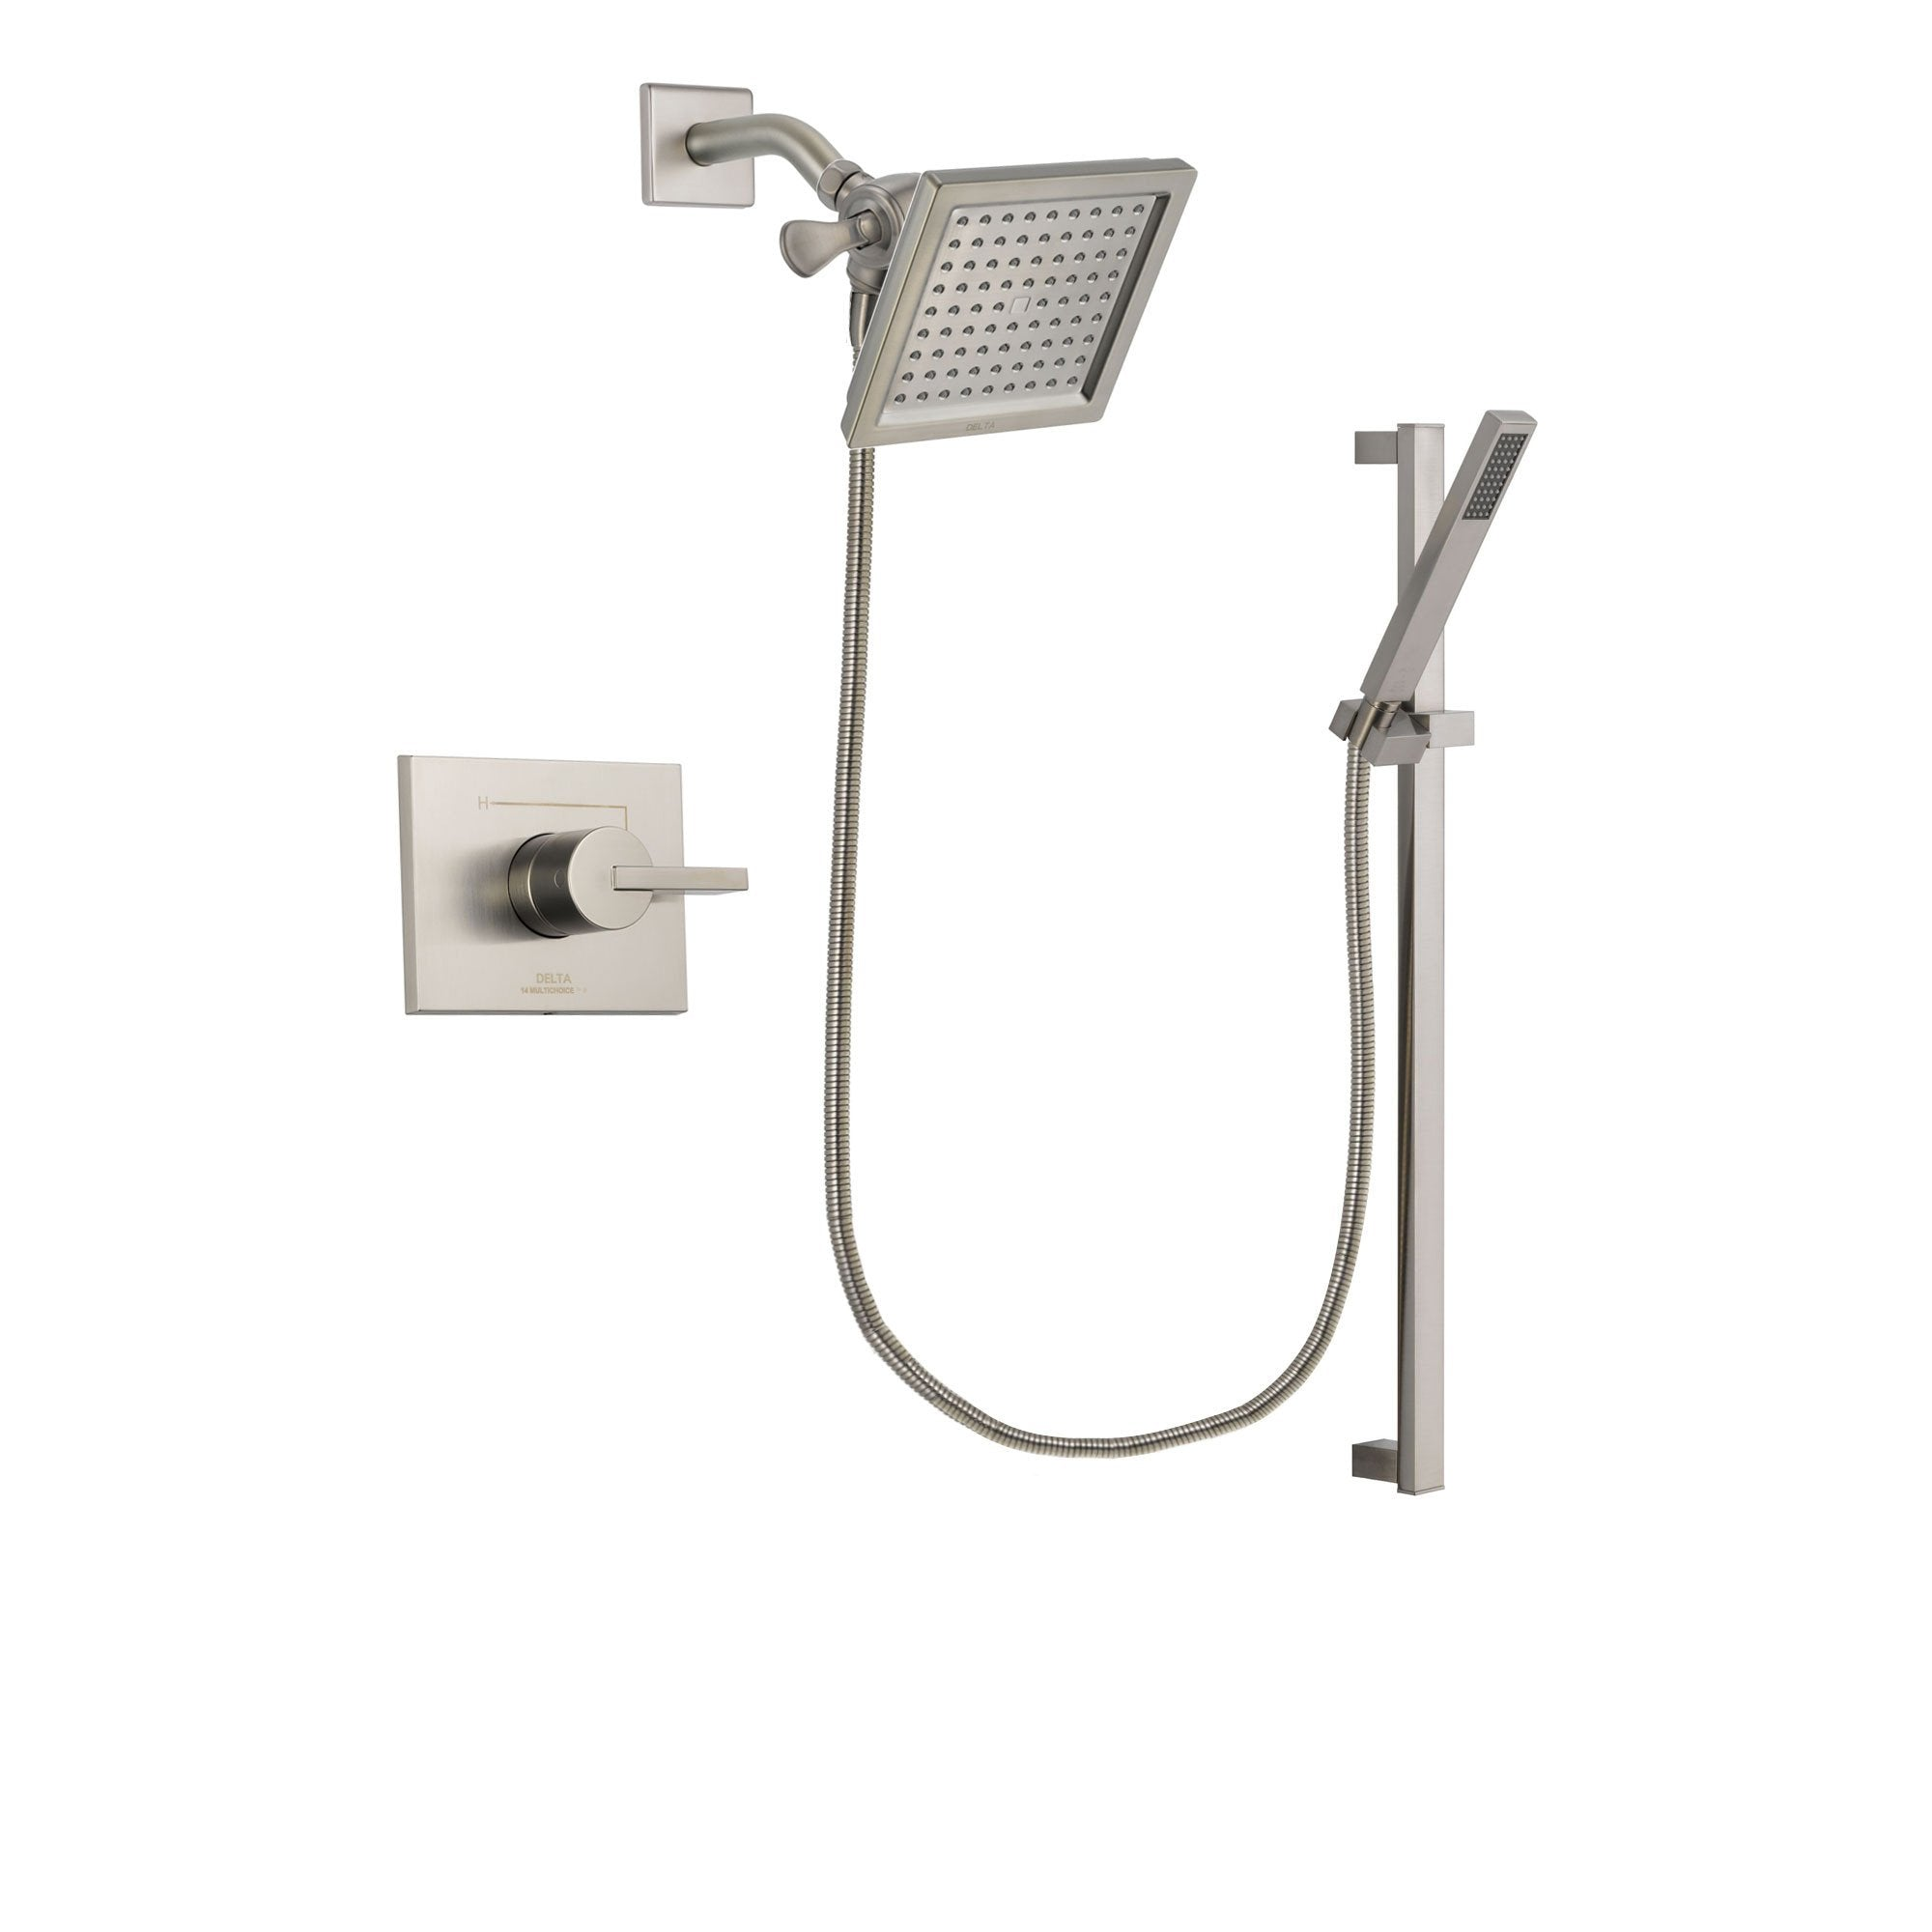 Delta Vero Stainless Steel Finish Shower Faucet System with Hand Shower DSP2354V